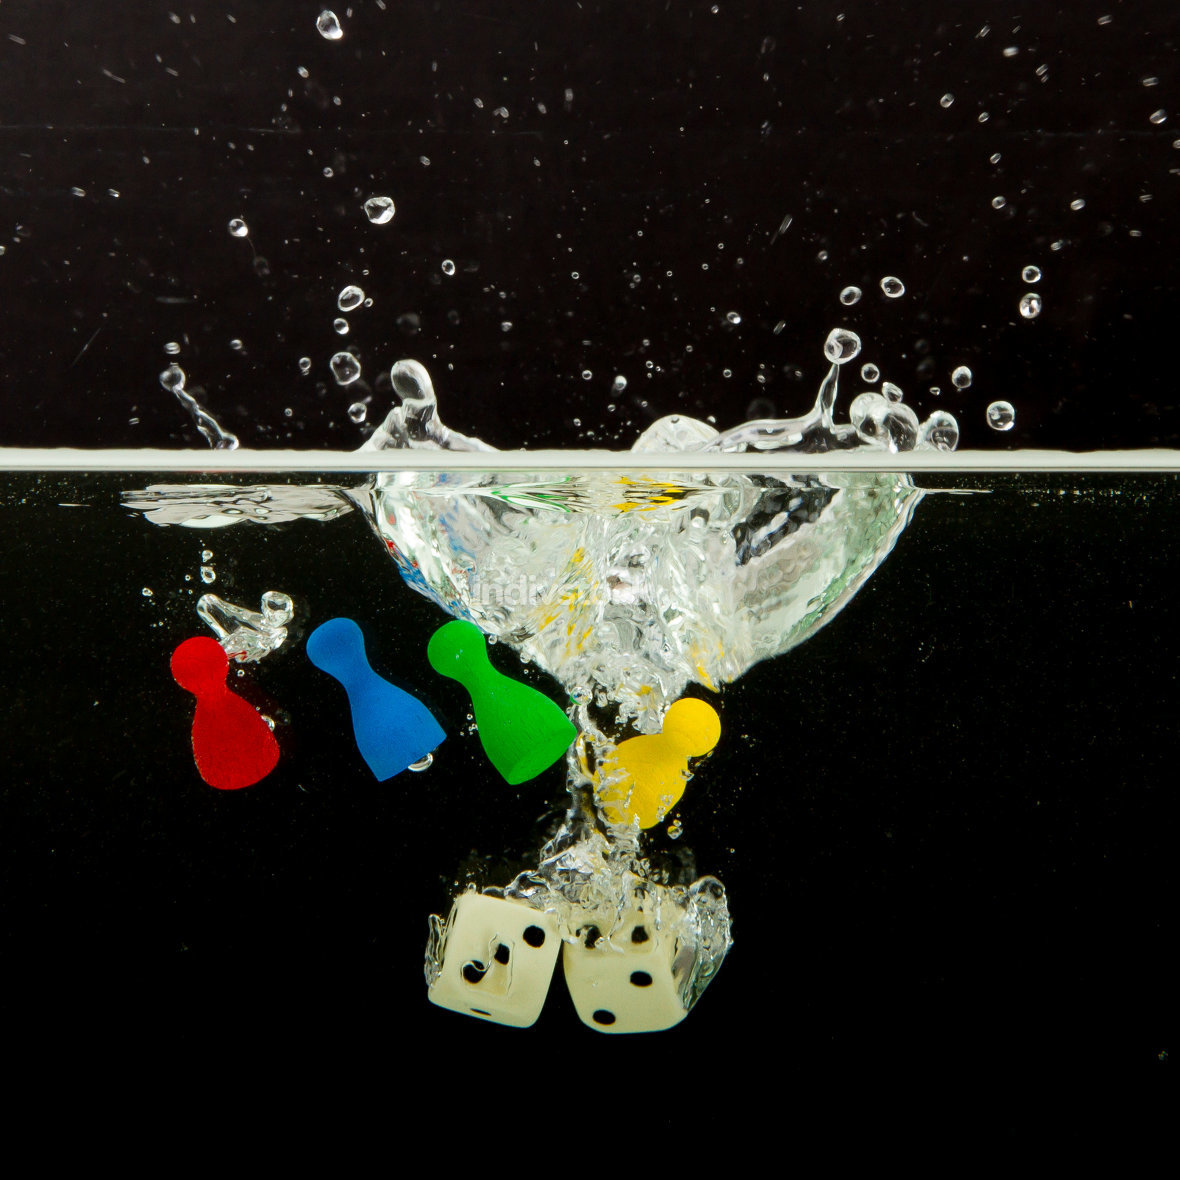 Four pions with splashing water